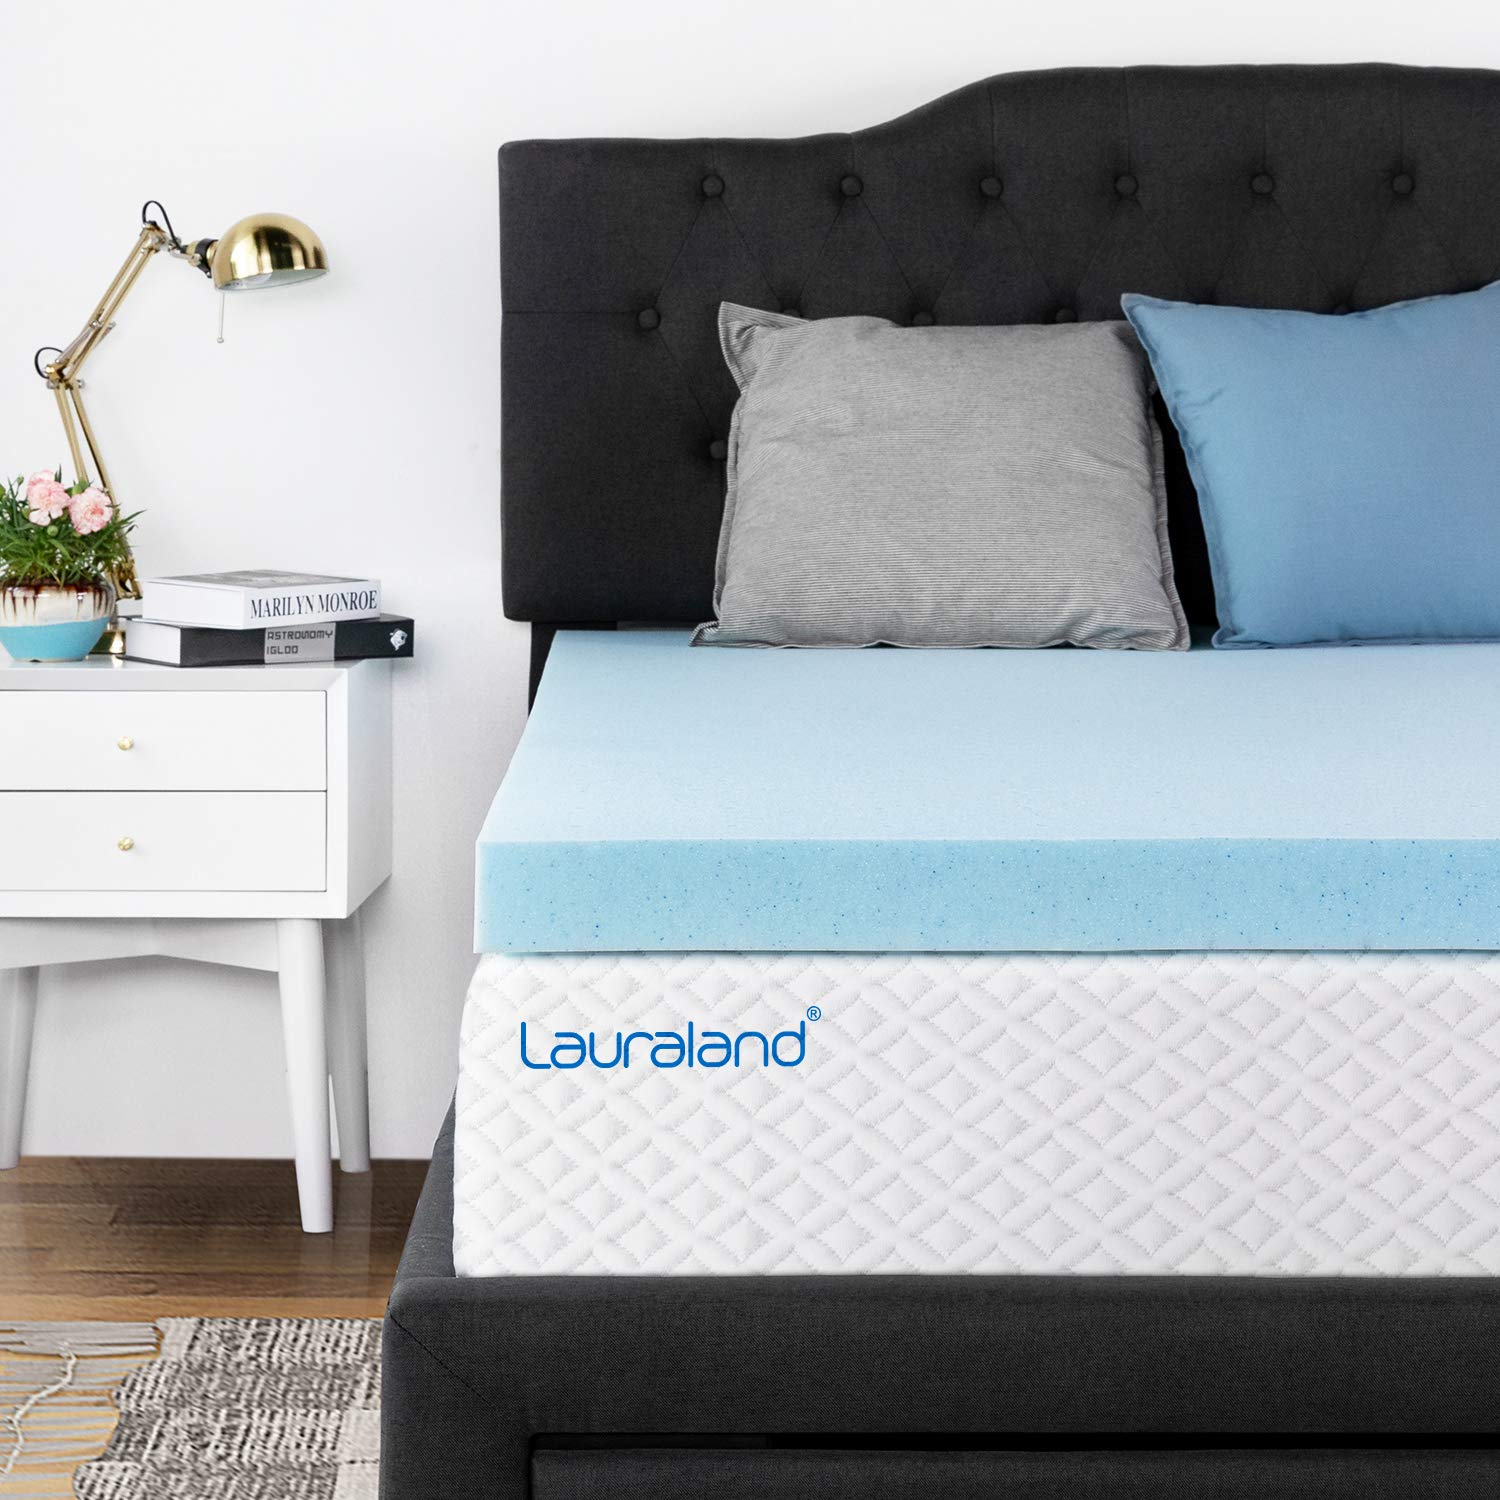 Lauraland Memory Foam Mattress Topper Queen, 3-Inch Active Cooling Design Bed Topper, CertiPUR-US 10-Year Warranty